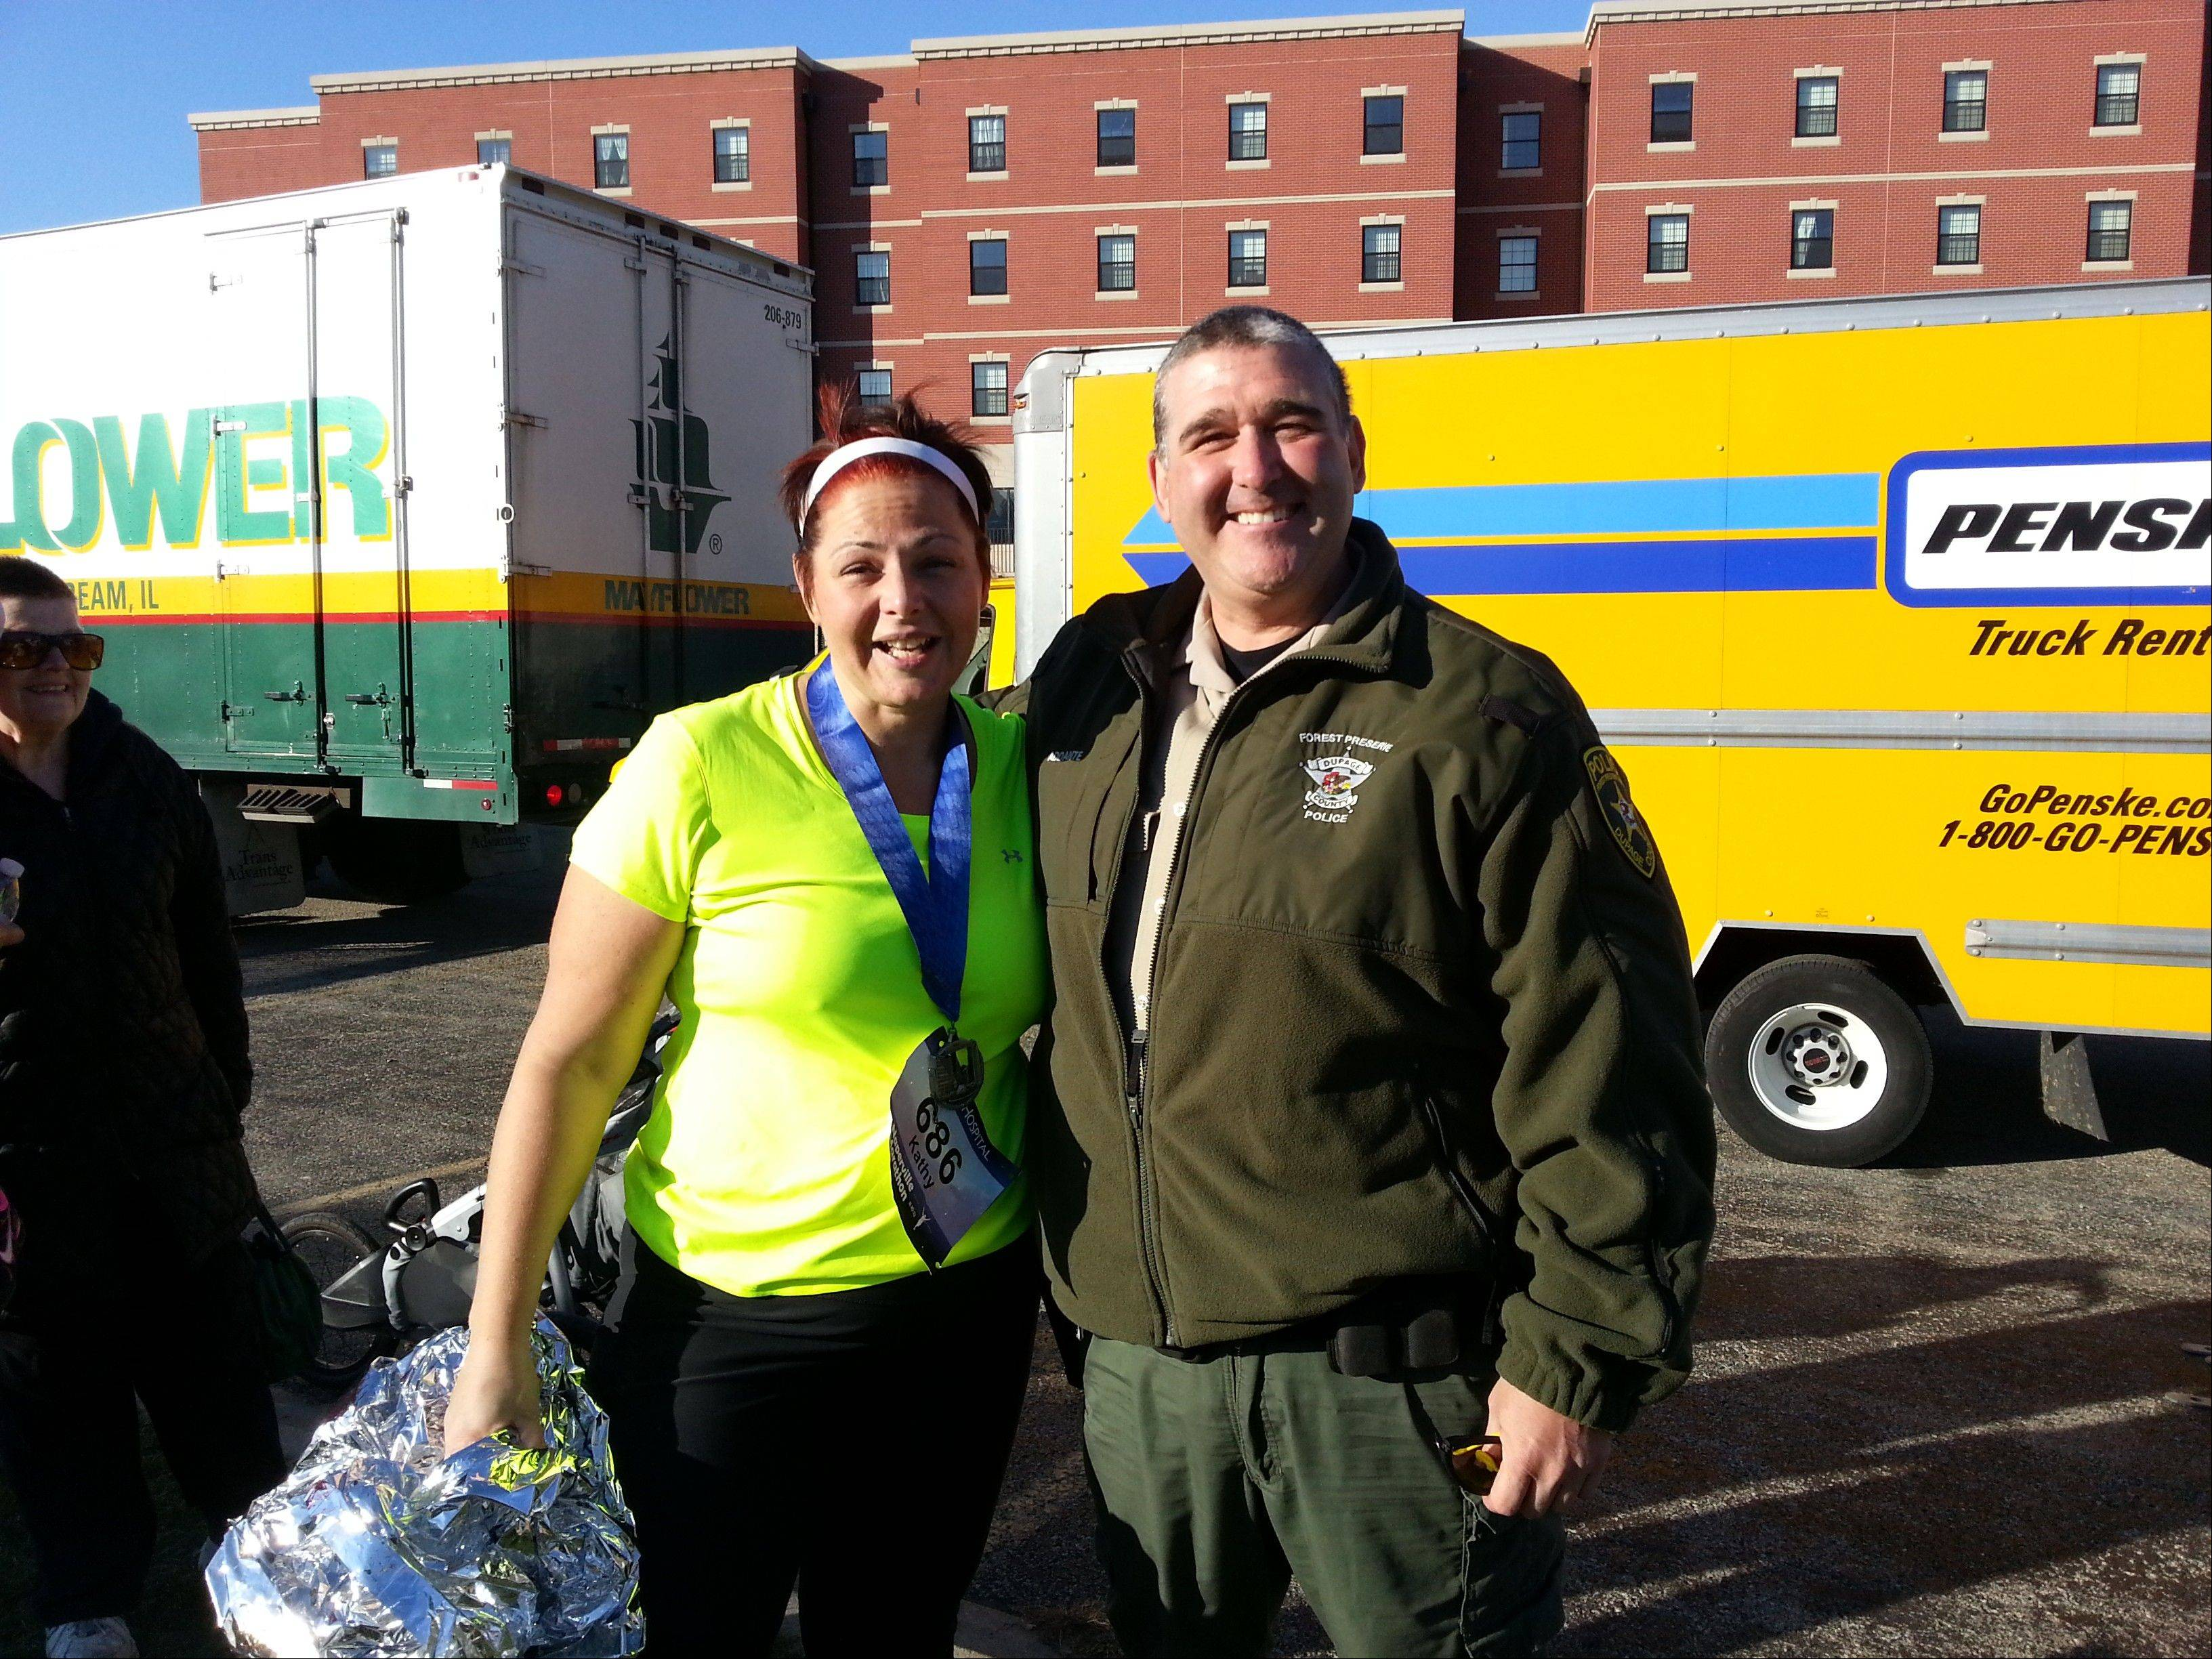 Naperville Marathon runner Kathy Contreras of Aurora smiles for a photo with DuPage County Forest Preserve District police officer Lou Addante after crossing the finish line. Addante was among a group of people who guided Contreras to the finish.